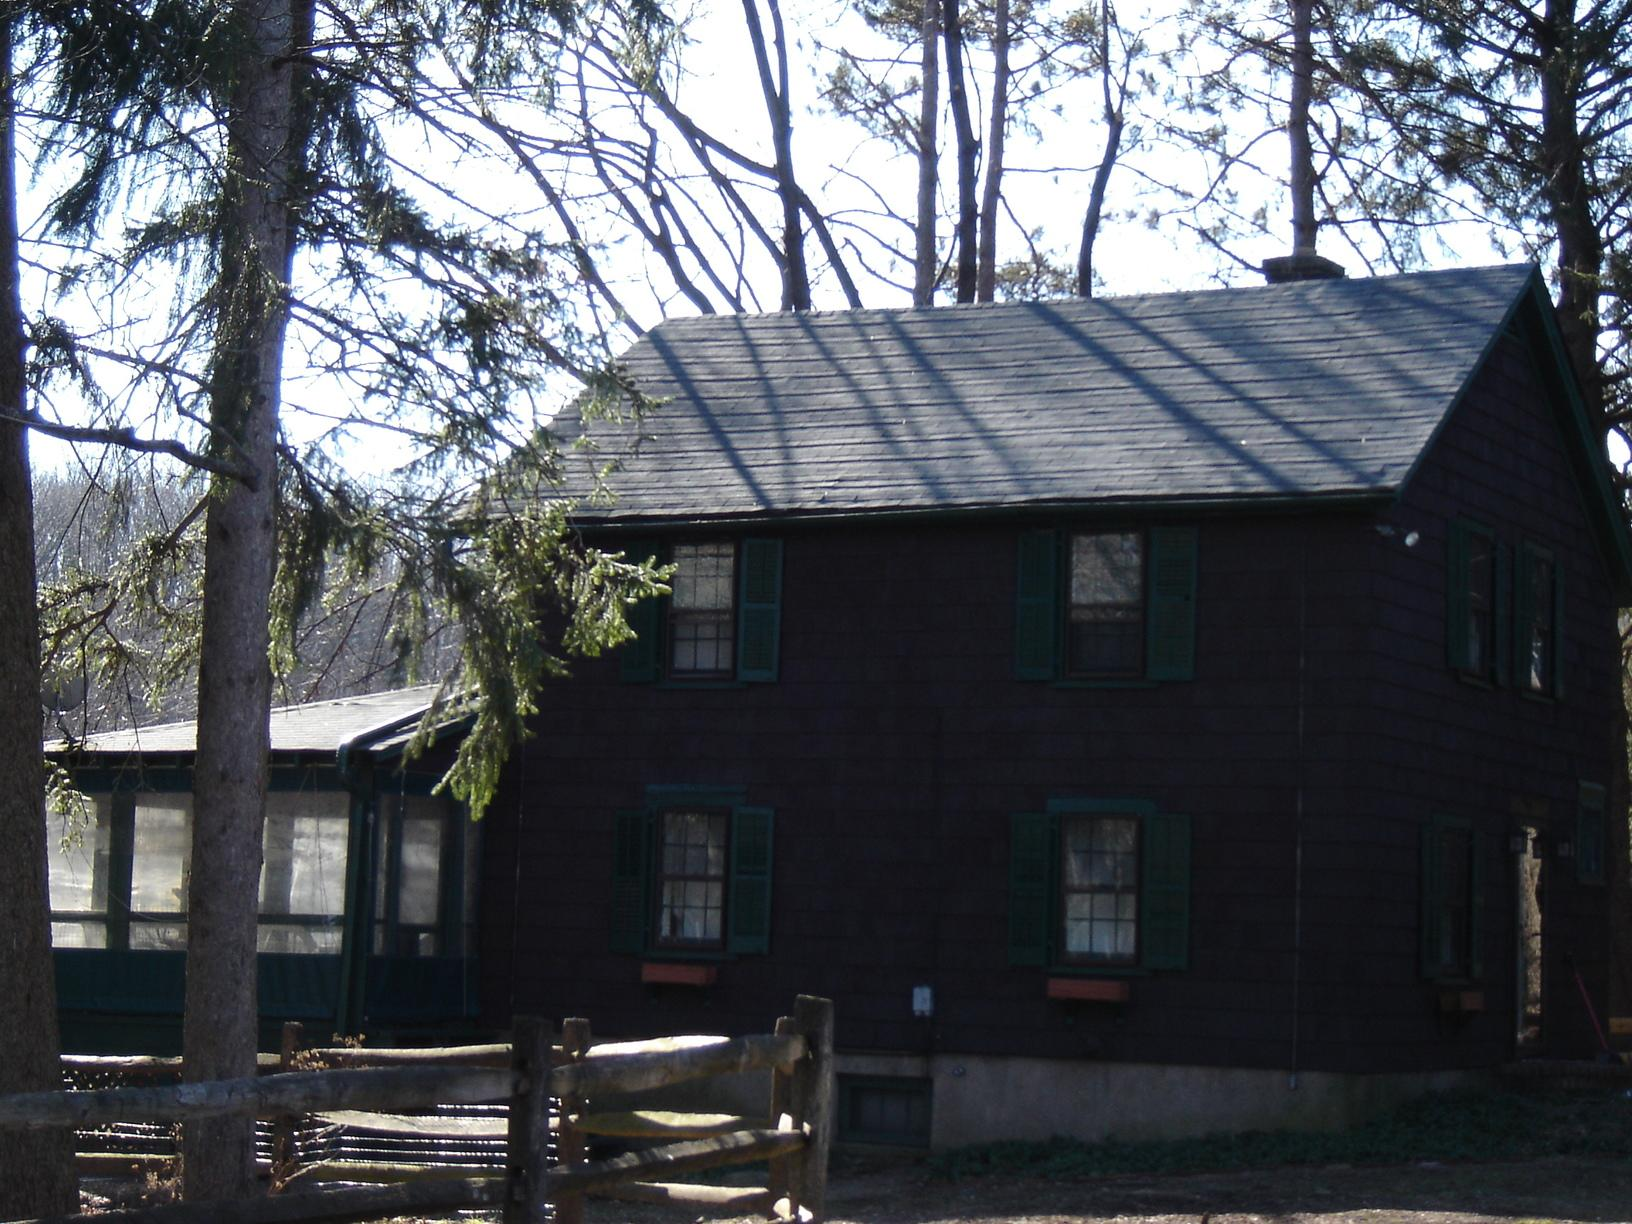 Replacing Asphalt Shingles with Matte Black Standing Seam Metal Roof on this Cottage Home in New Vernon, NJ - Before Photo